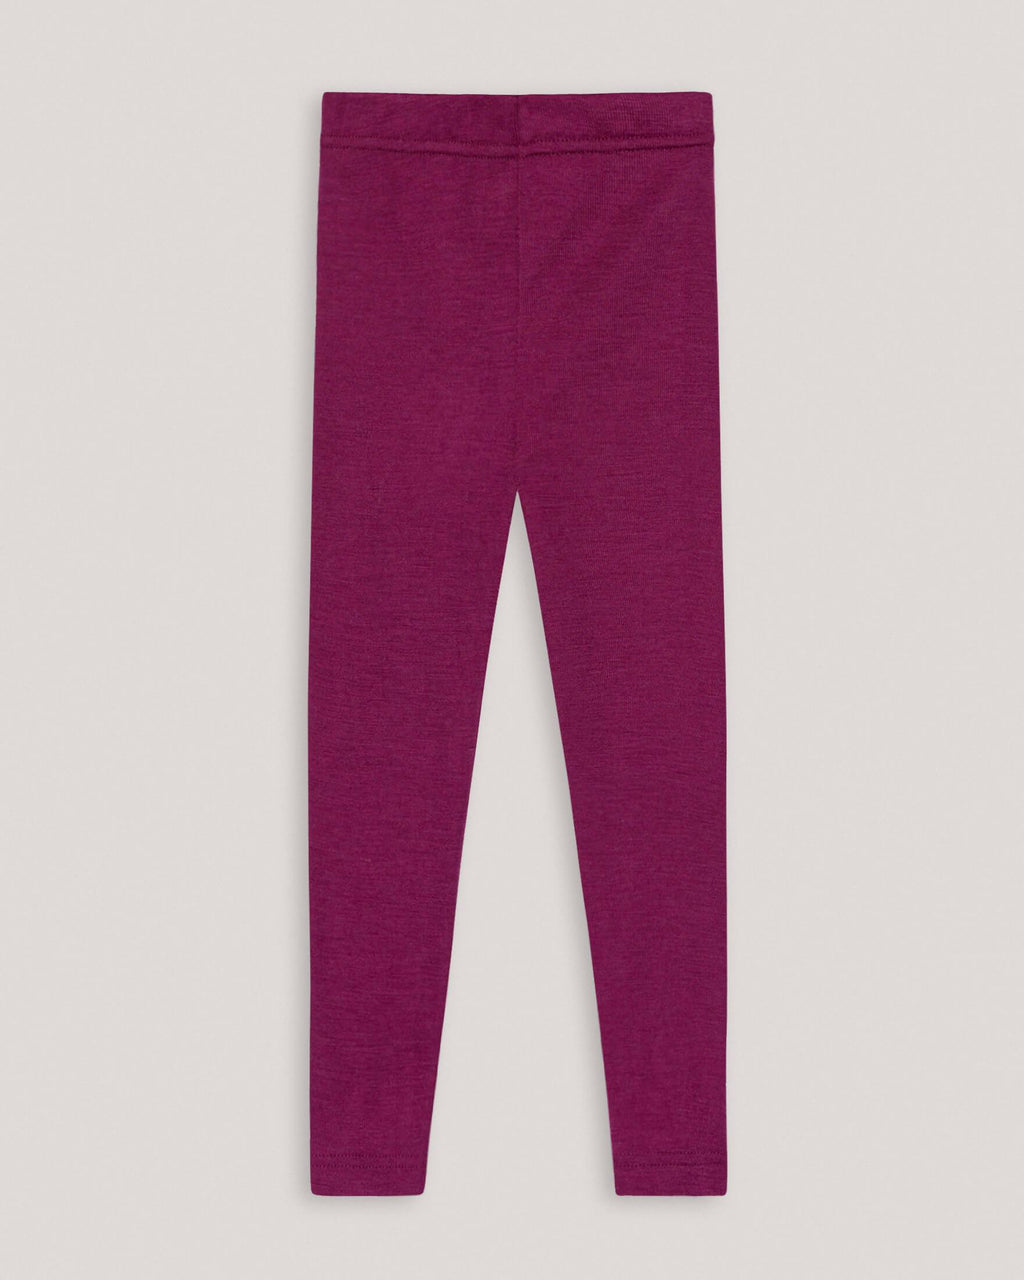 variant_1 | EN Purple Leggings Kids Multicolor ENGEL | DE Lila Leggings Kinder Bunt ENGEL